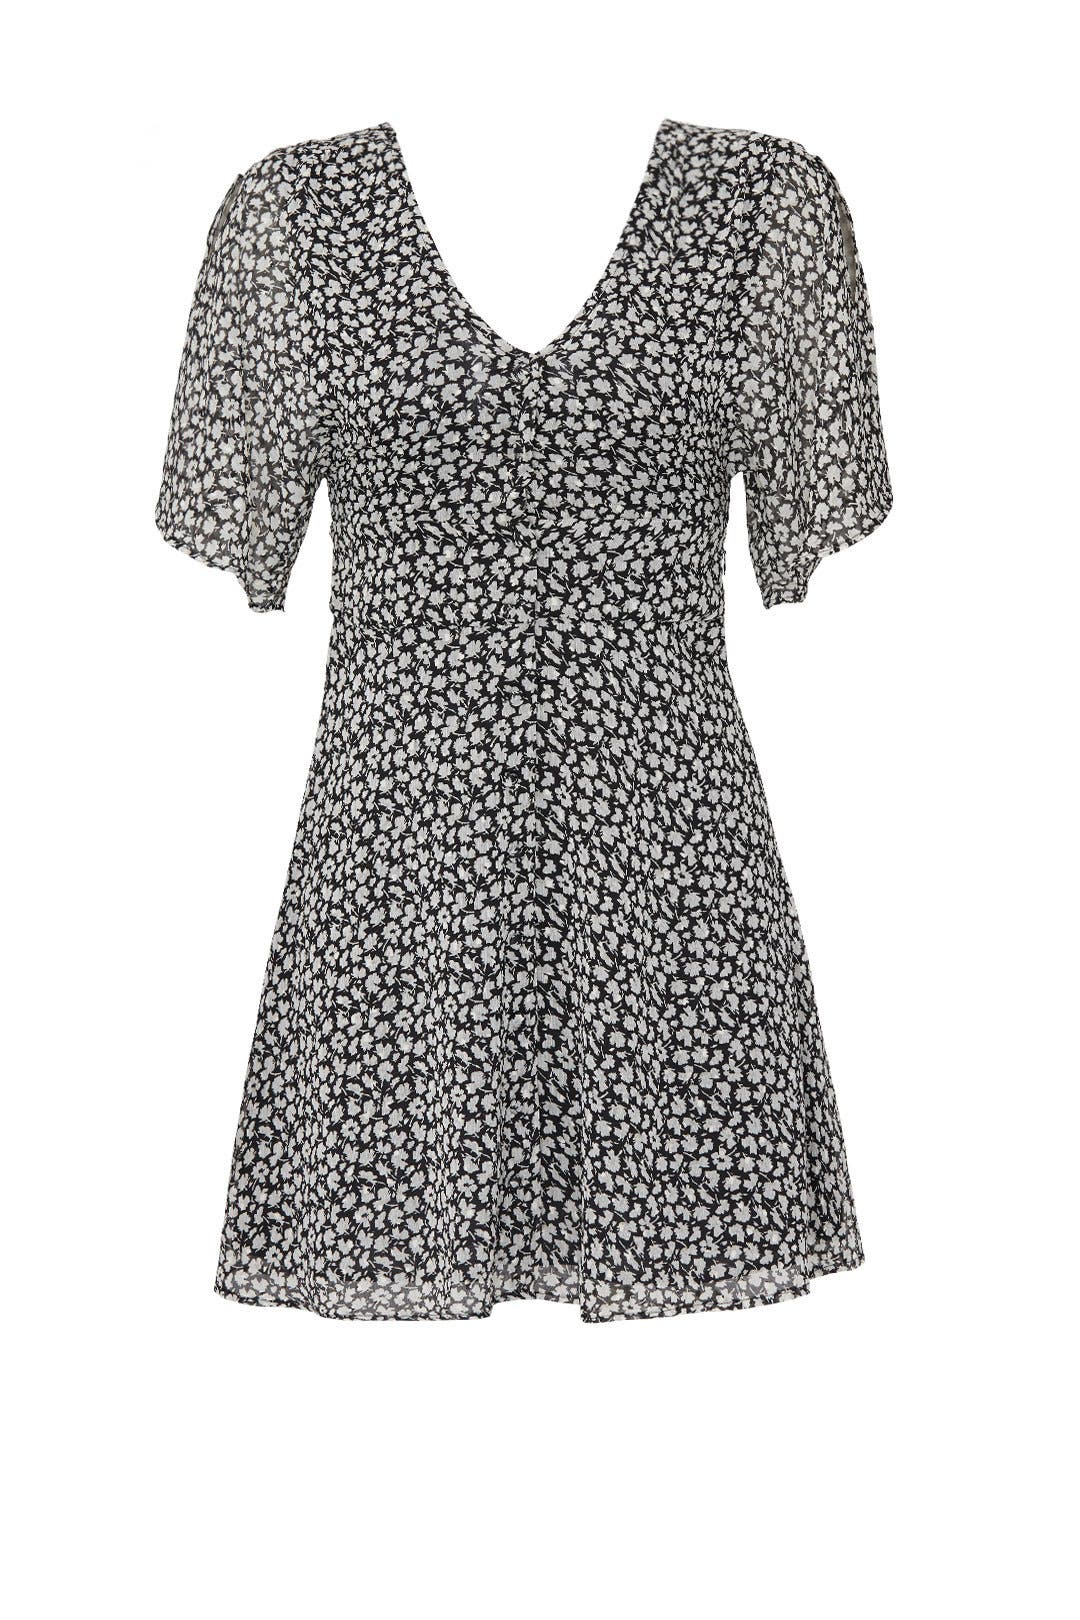 22fe11059 Printed Ivy Dress by AllSaints for $35 | Rent the Runway